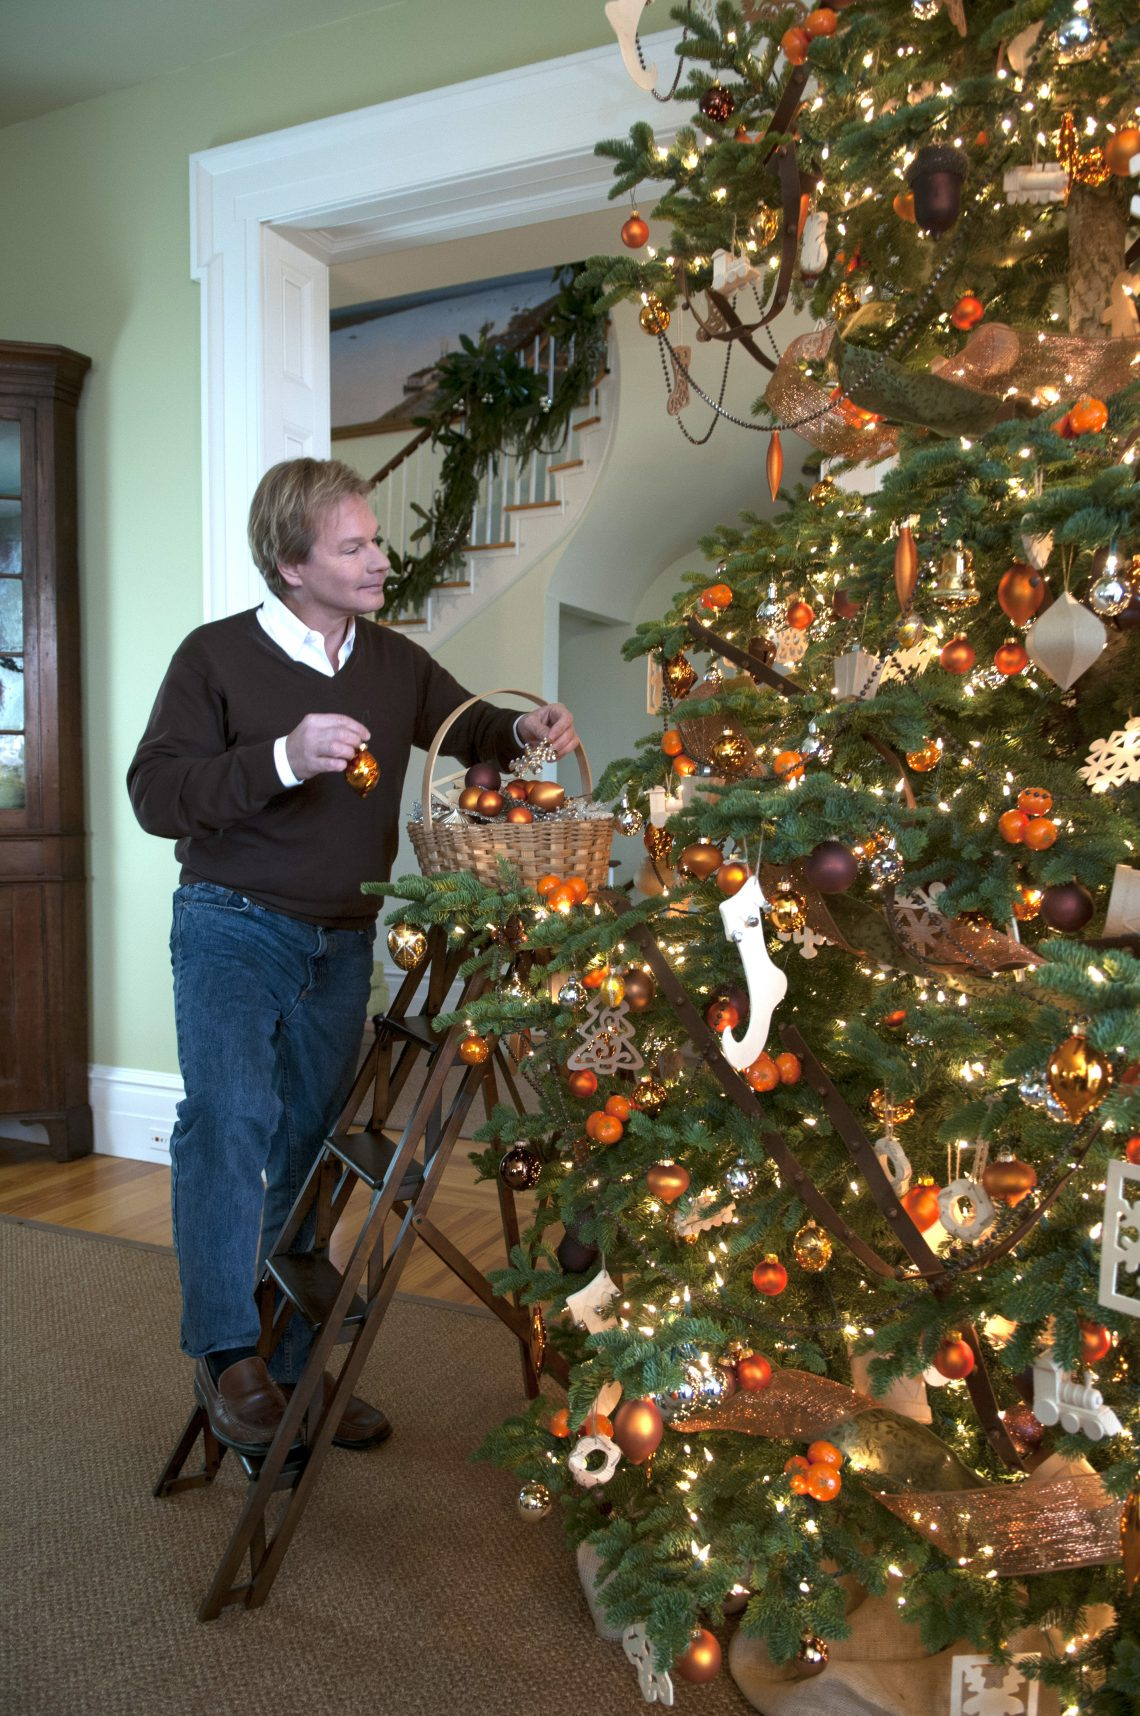 P. Allen puts finishing touches on his tree.